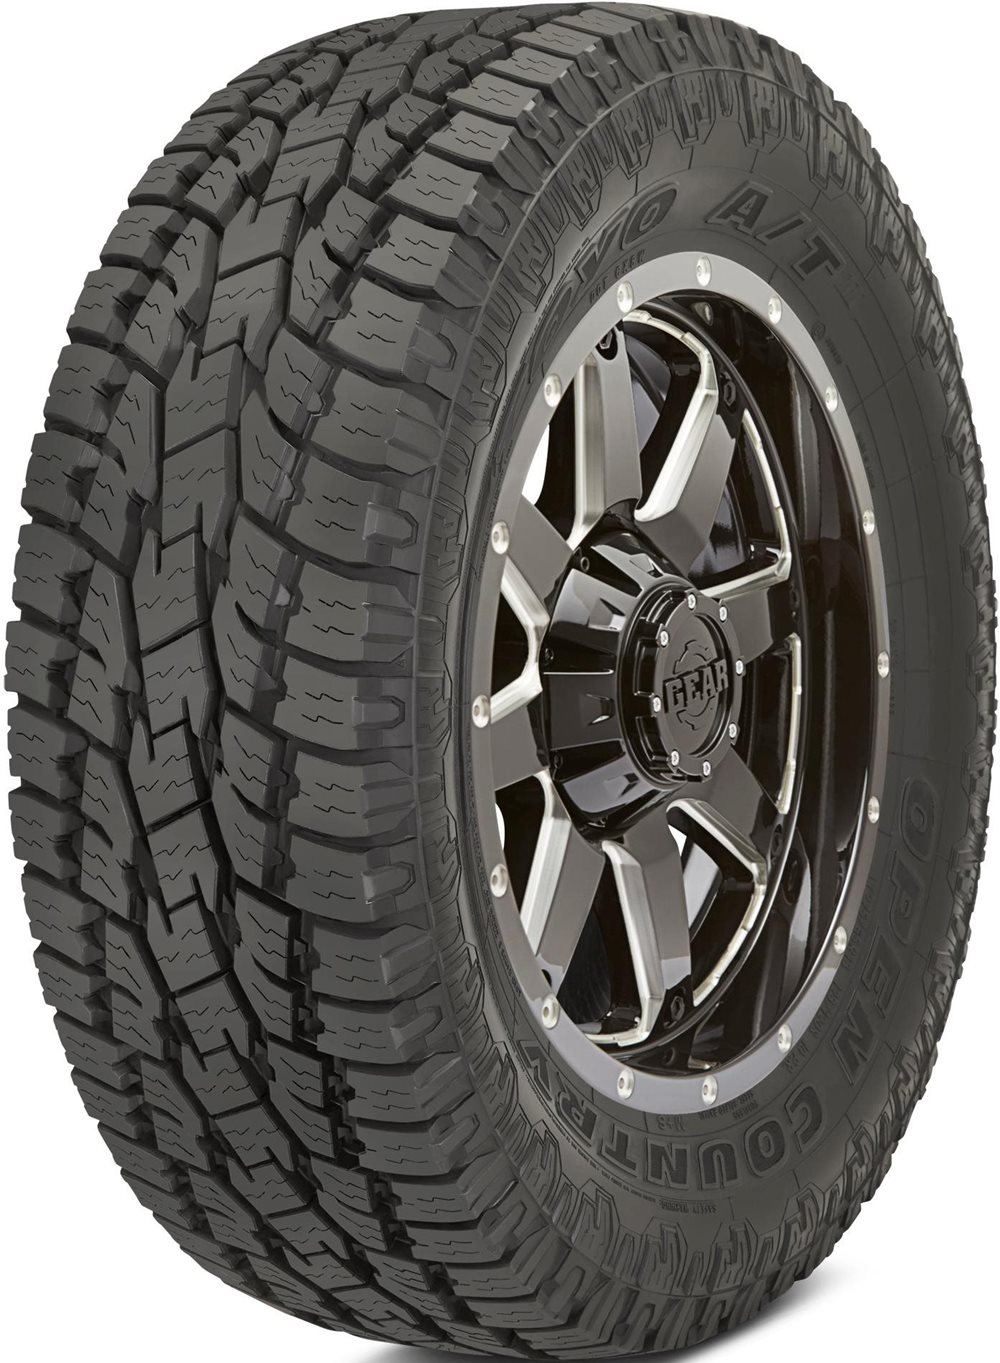 TOYO OPEN COUNTRY A/T+ 265/70 R 16